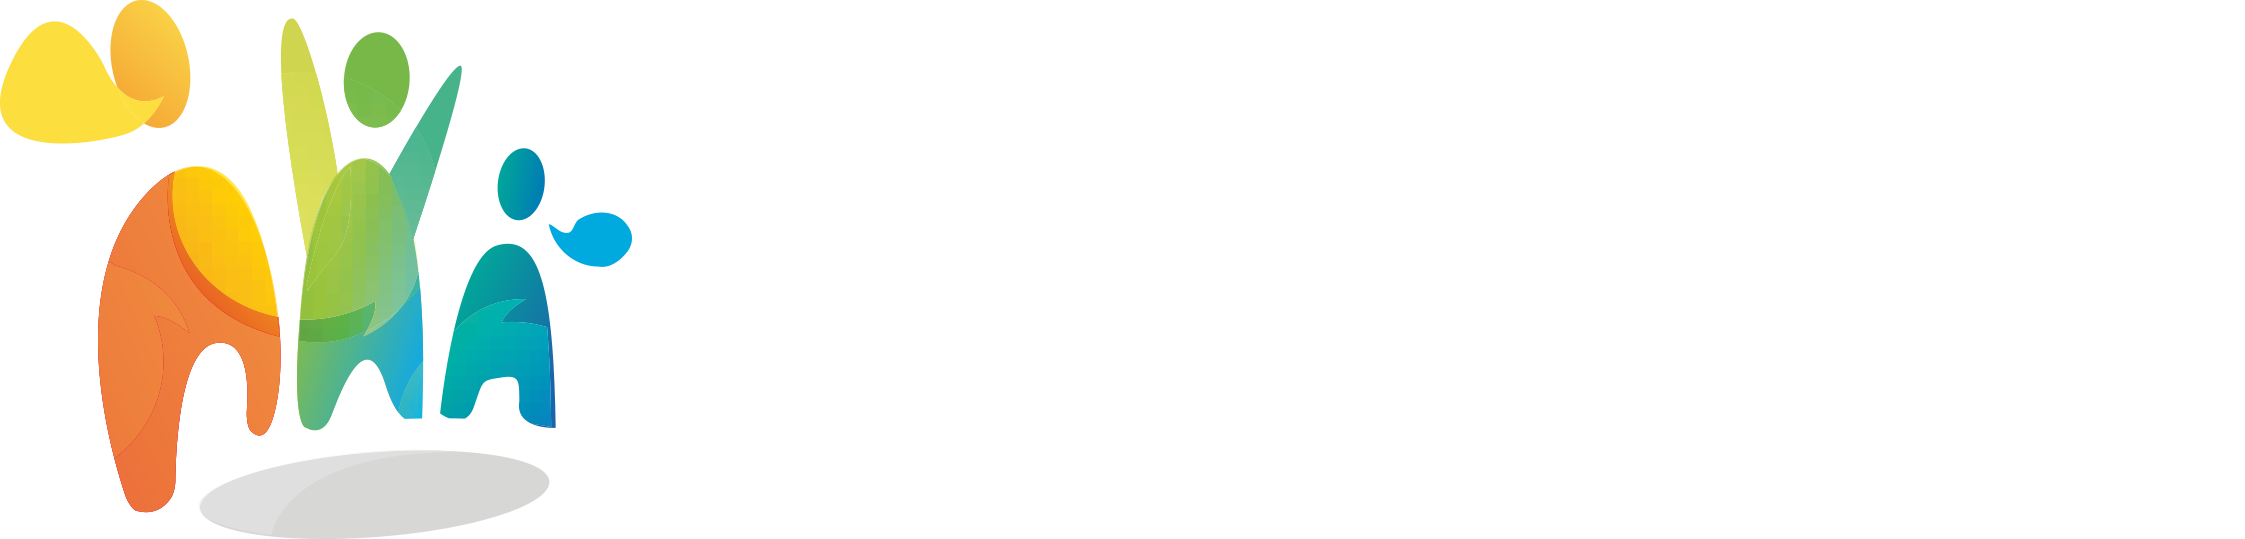 HR Summit - The SuperHeRoes Conference